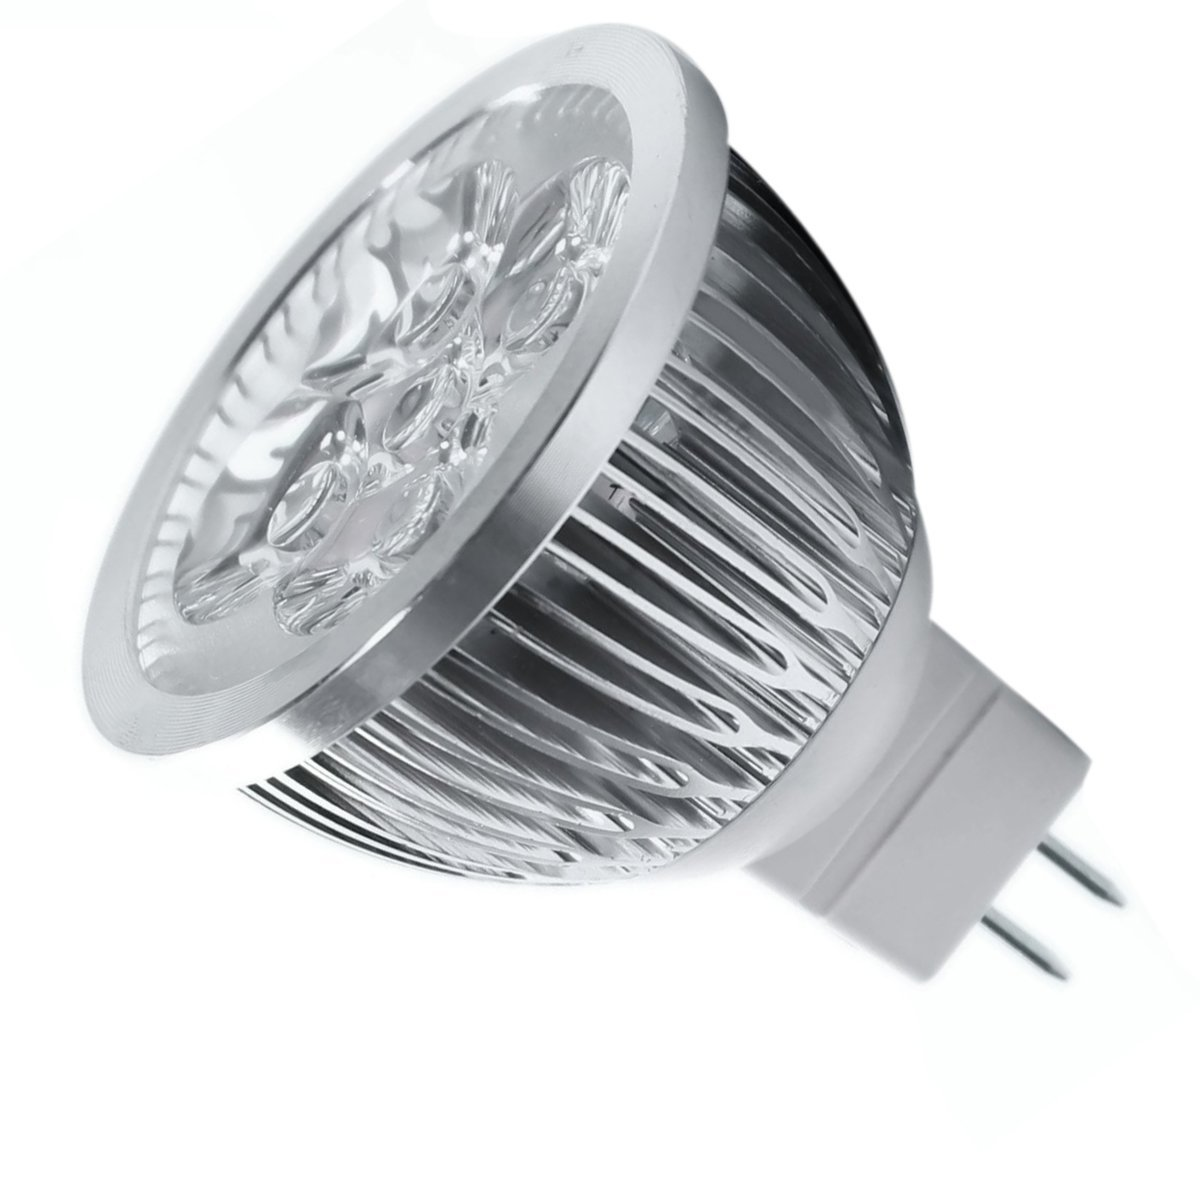 Cf615 8 4w Dimmable Mr16 Led Bulb 3200k Warm White Led Spotlight Ebay